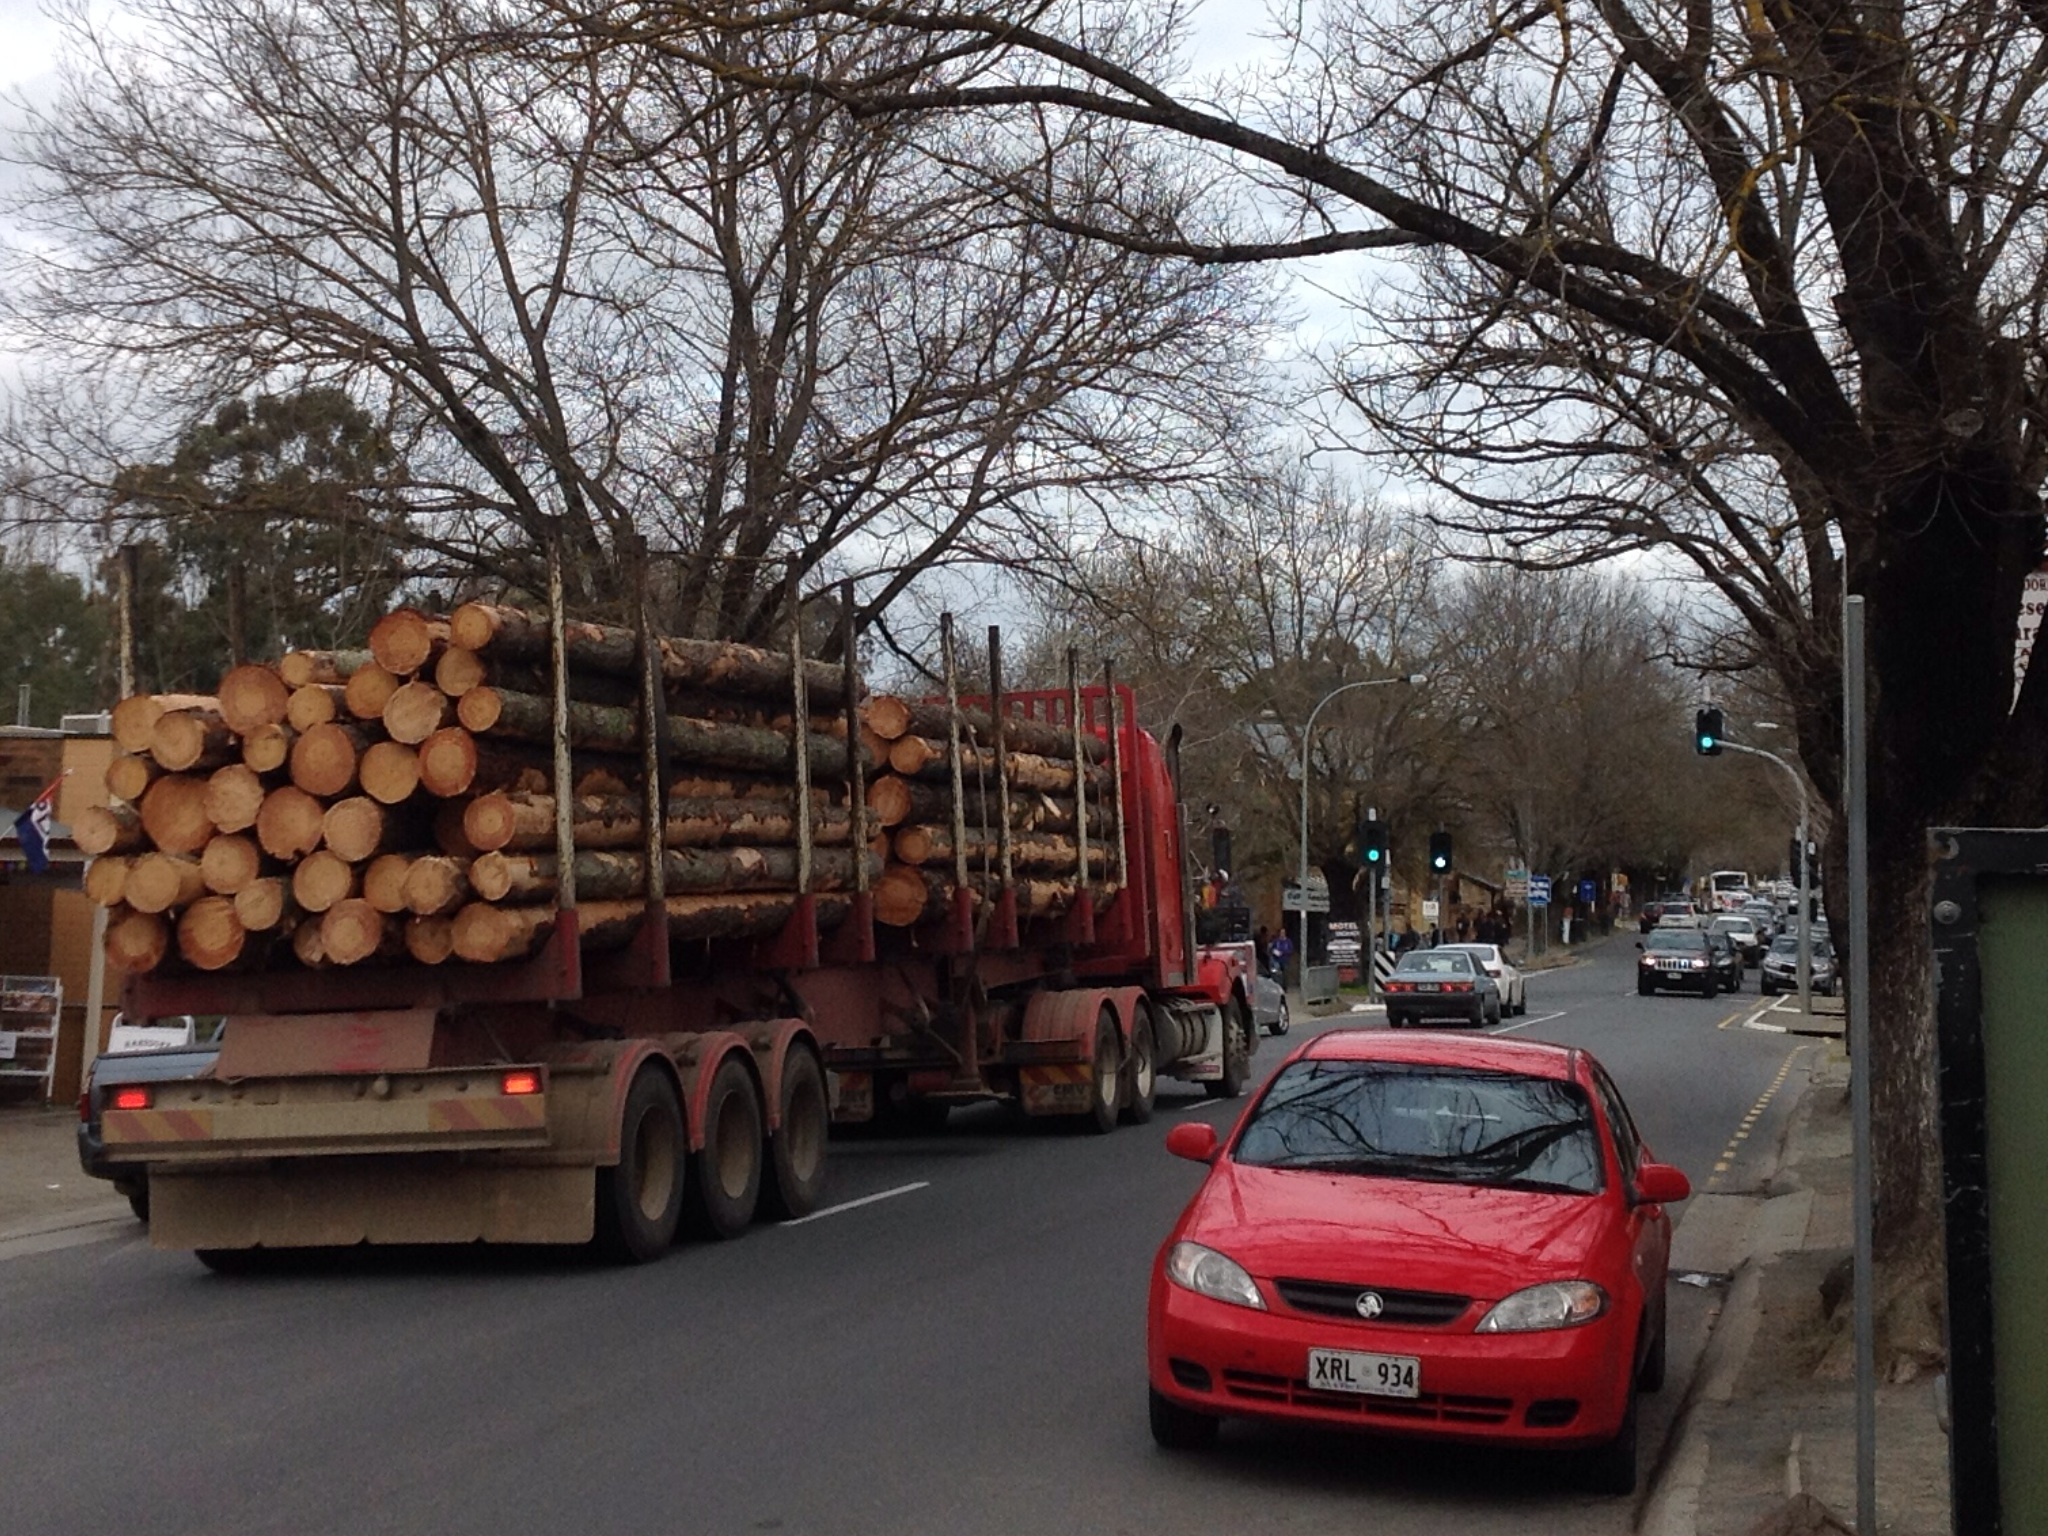 deciduous trees bare in winter, Hahndorf, logging trucks, tourist walk, winter cheer